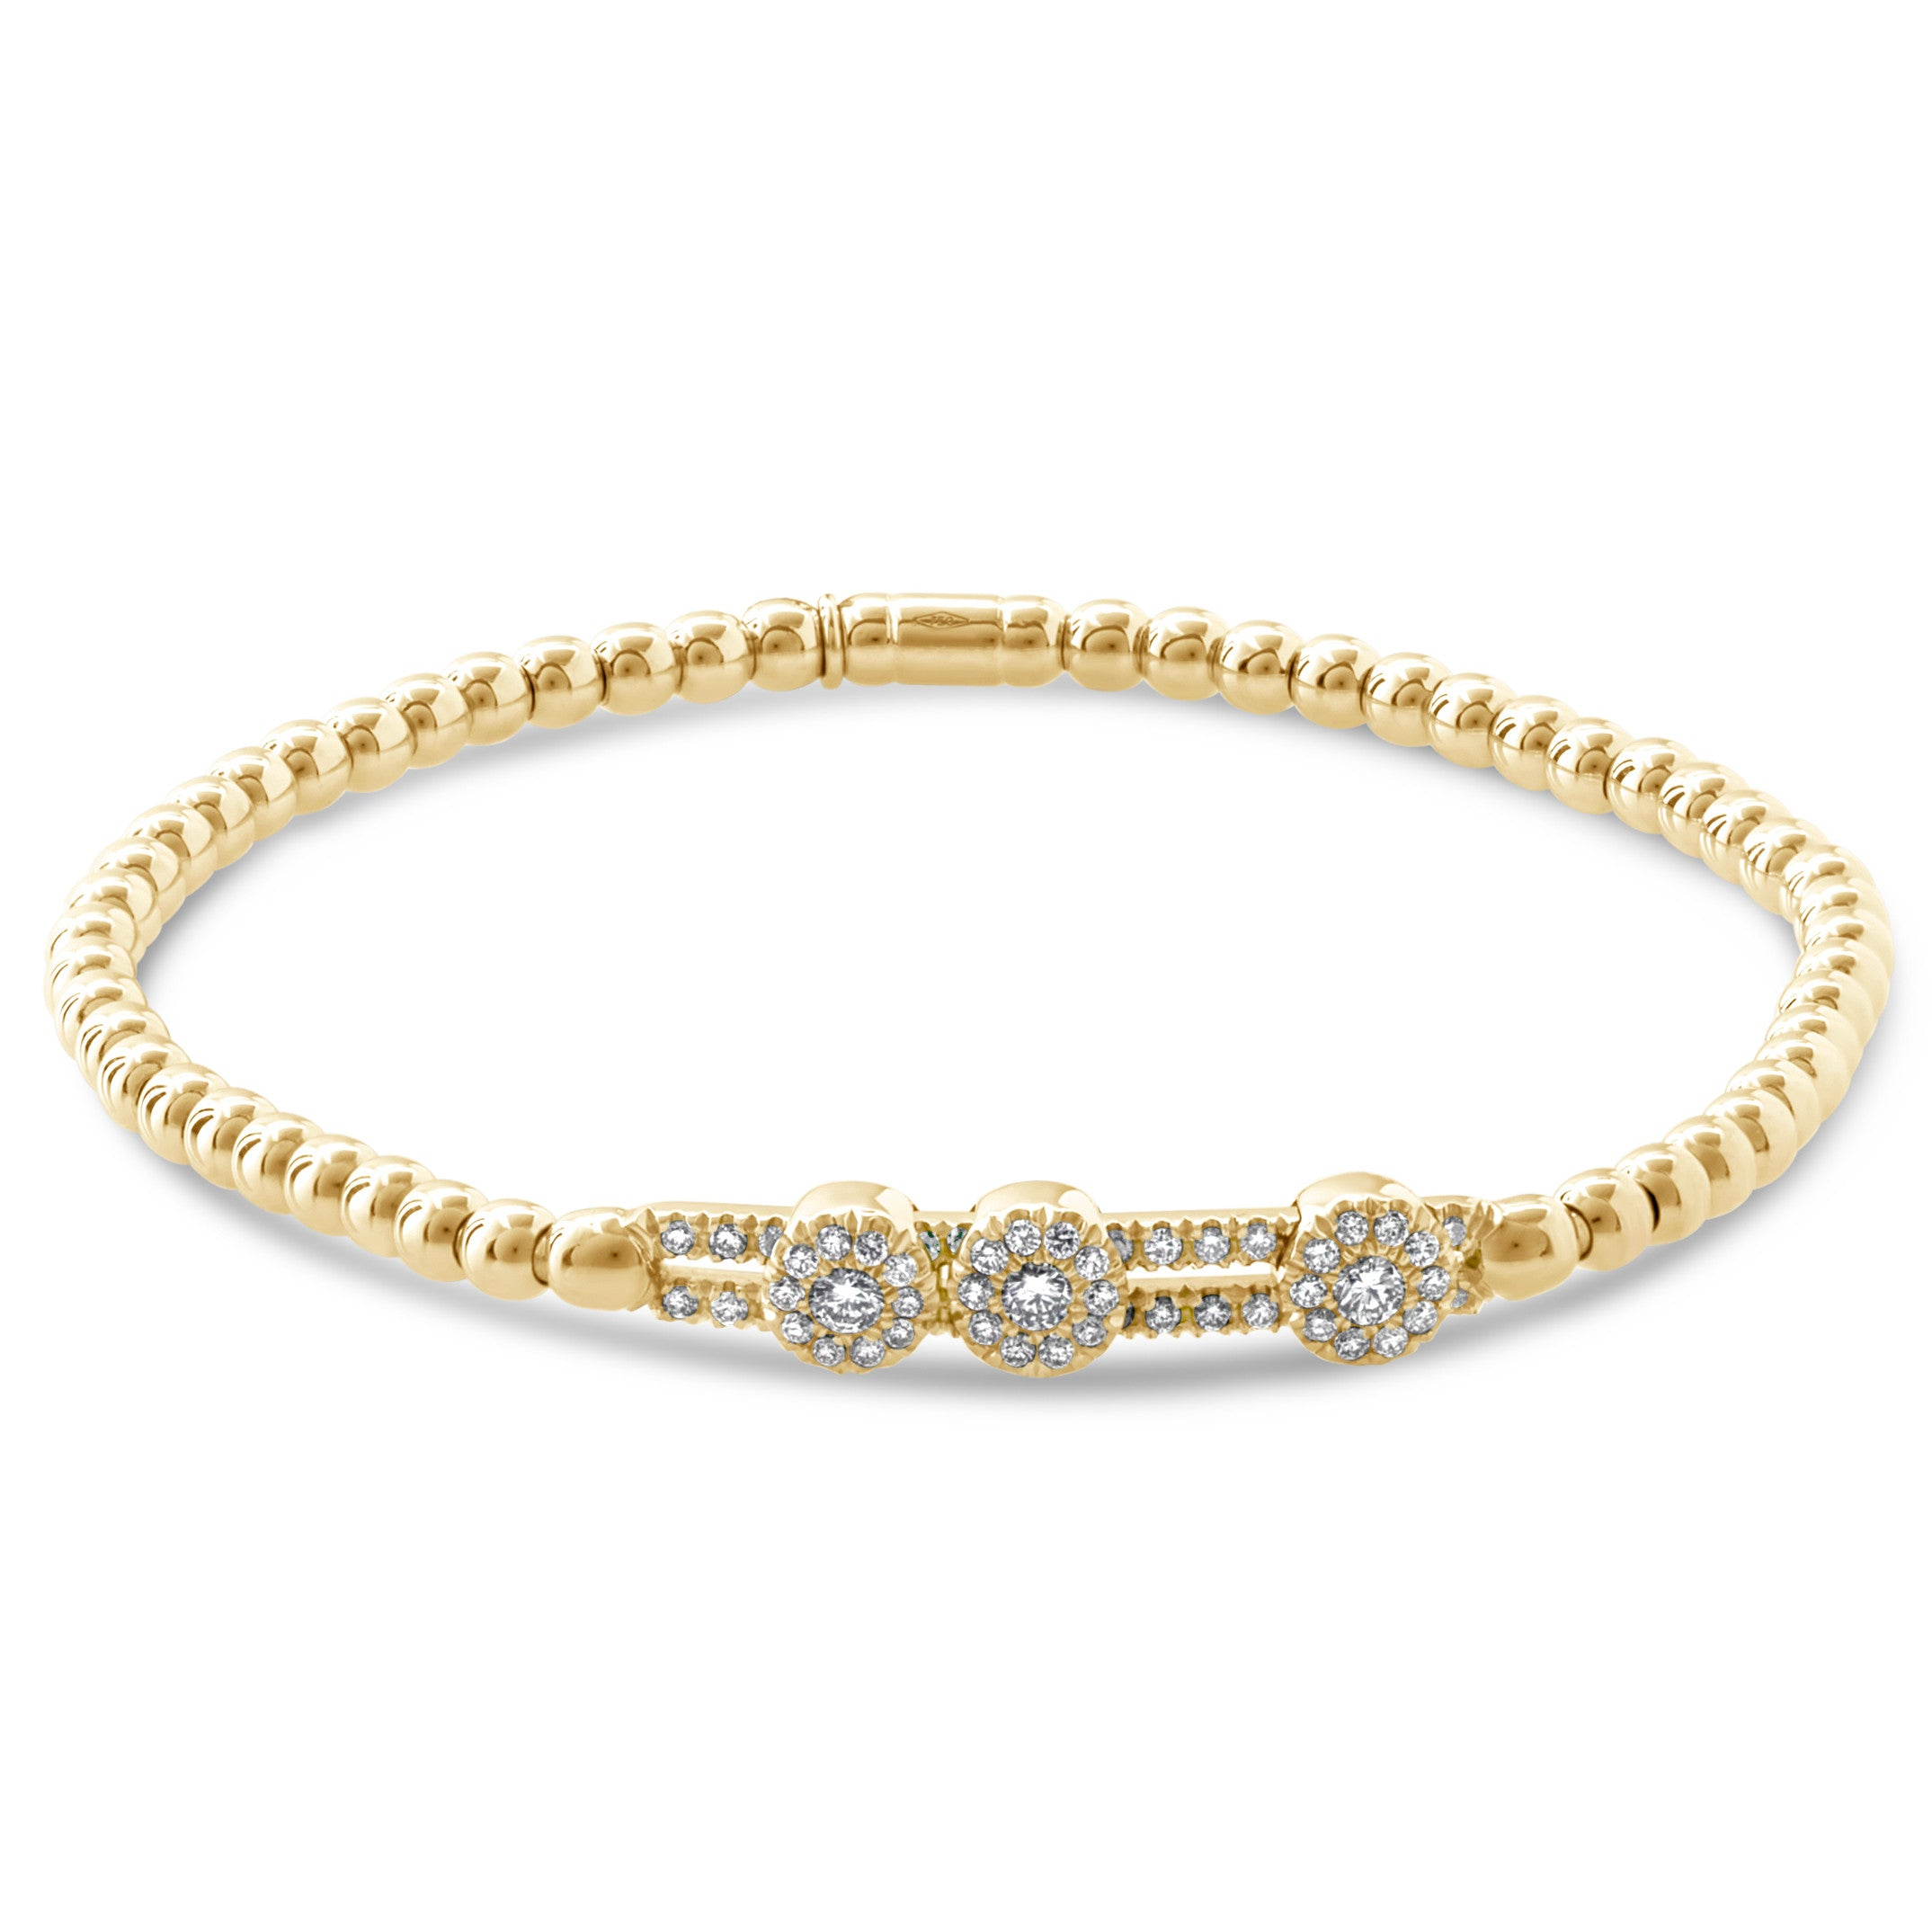 moonlight stackable normal gallery bangle two jewelry bracelet row bangles stacked lyst bracelets product elements crystal bittar diamond alexis gold